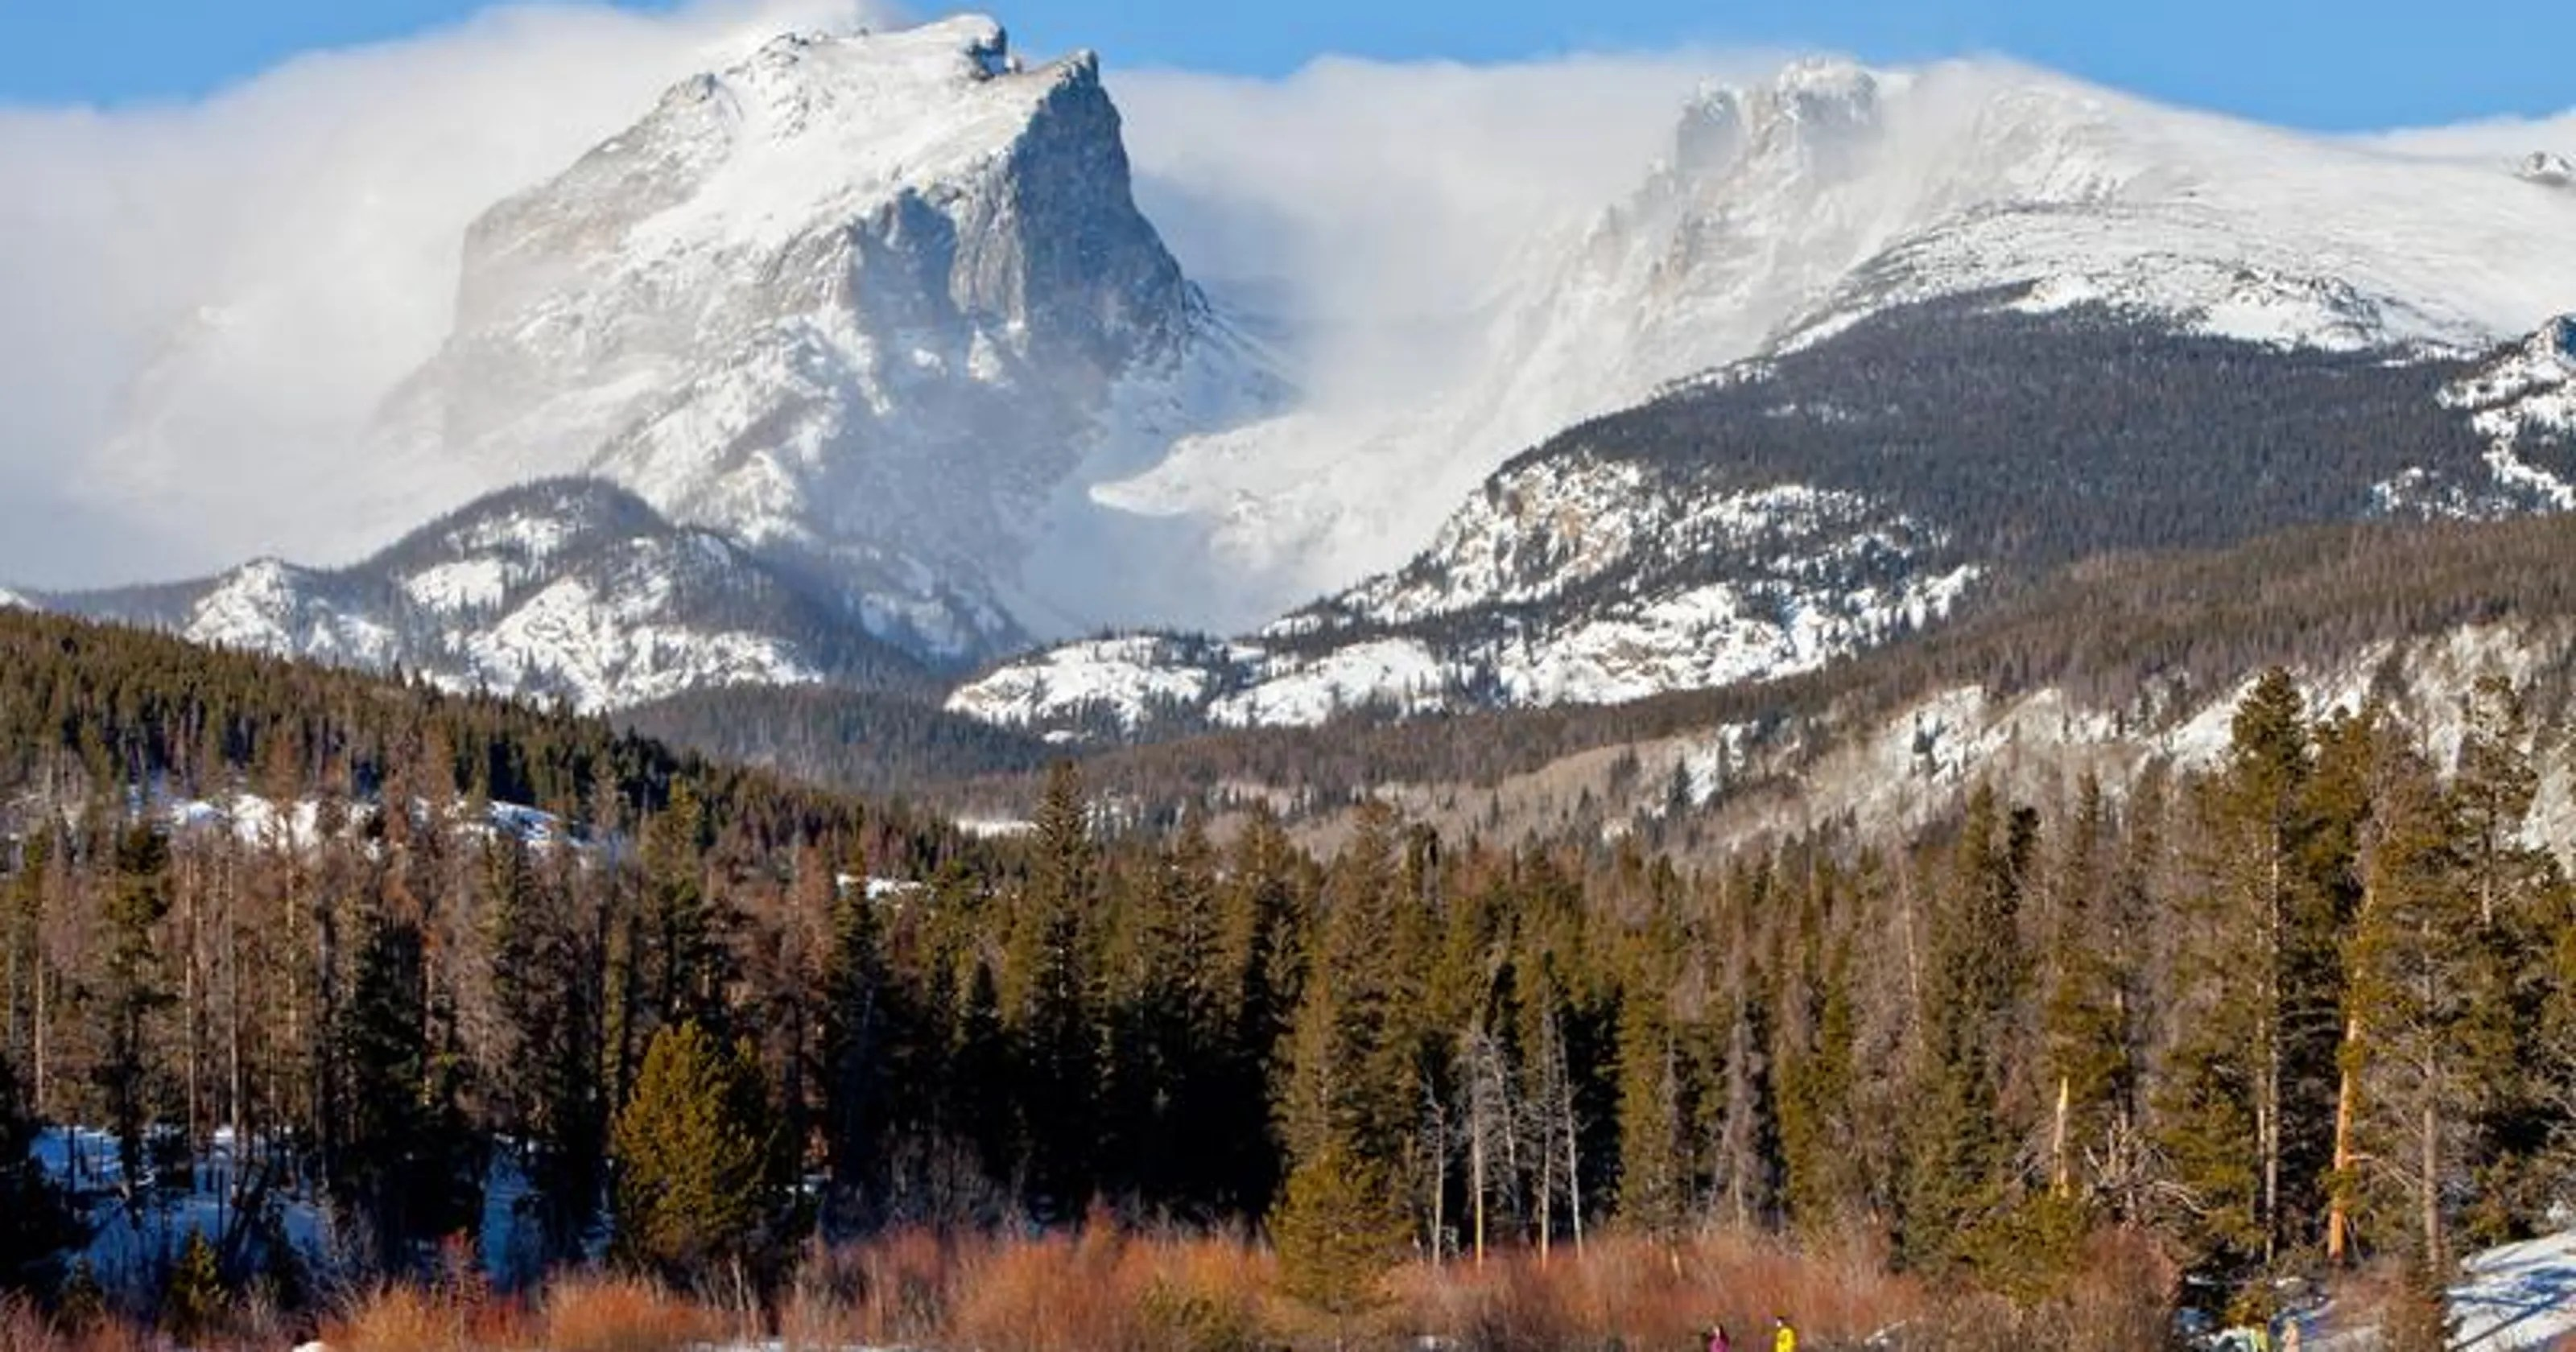 Try These 5 Winter Hikes In Rocky Mountain National Park